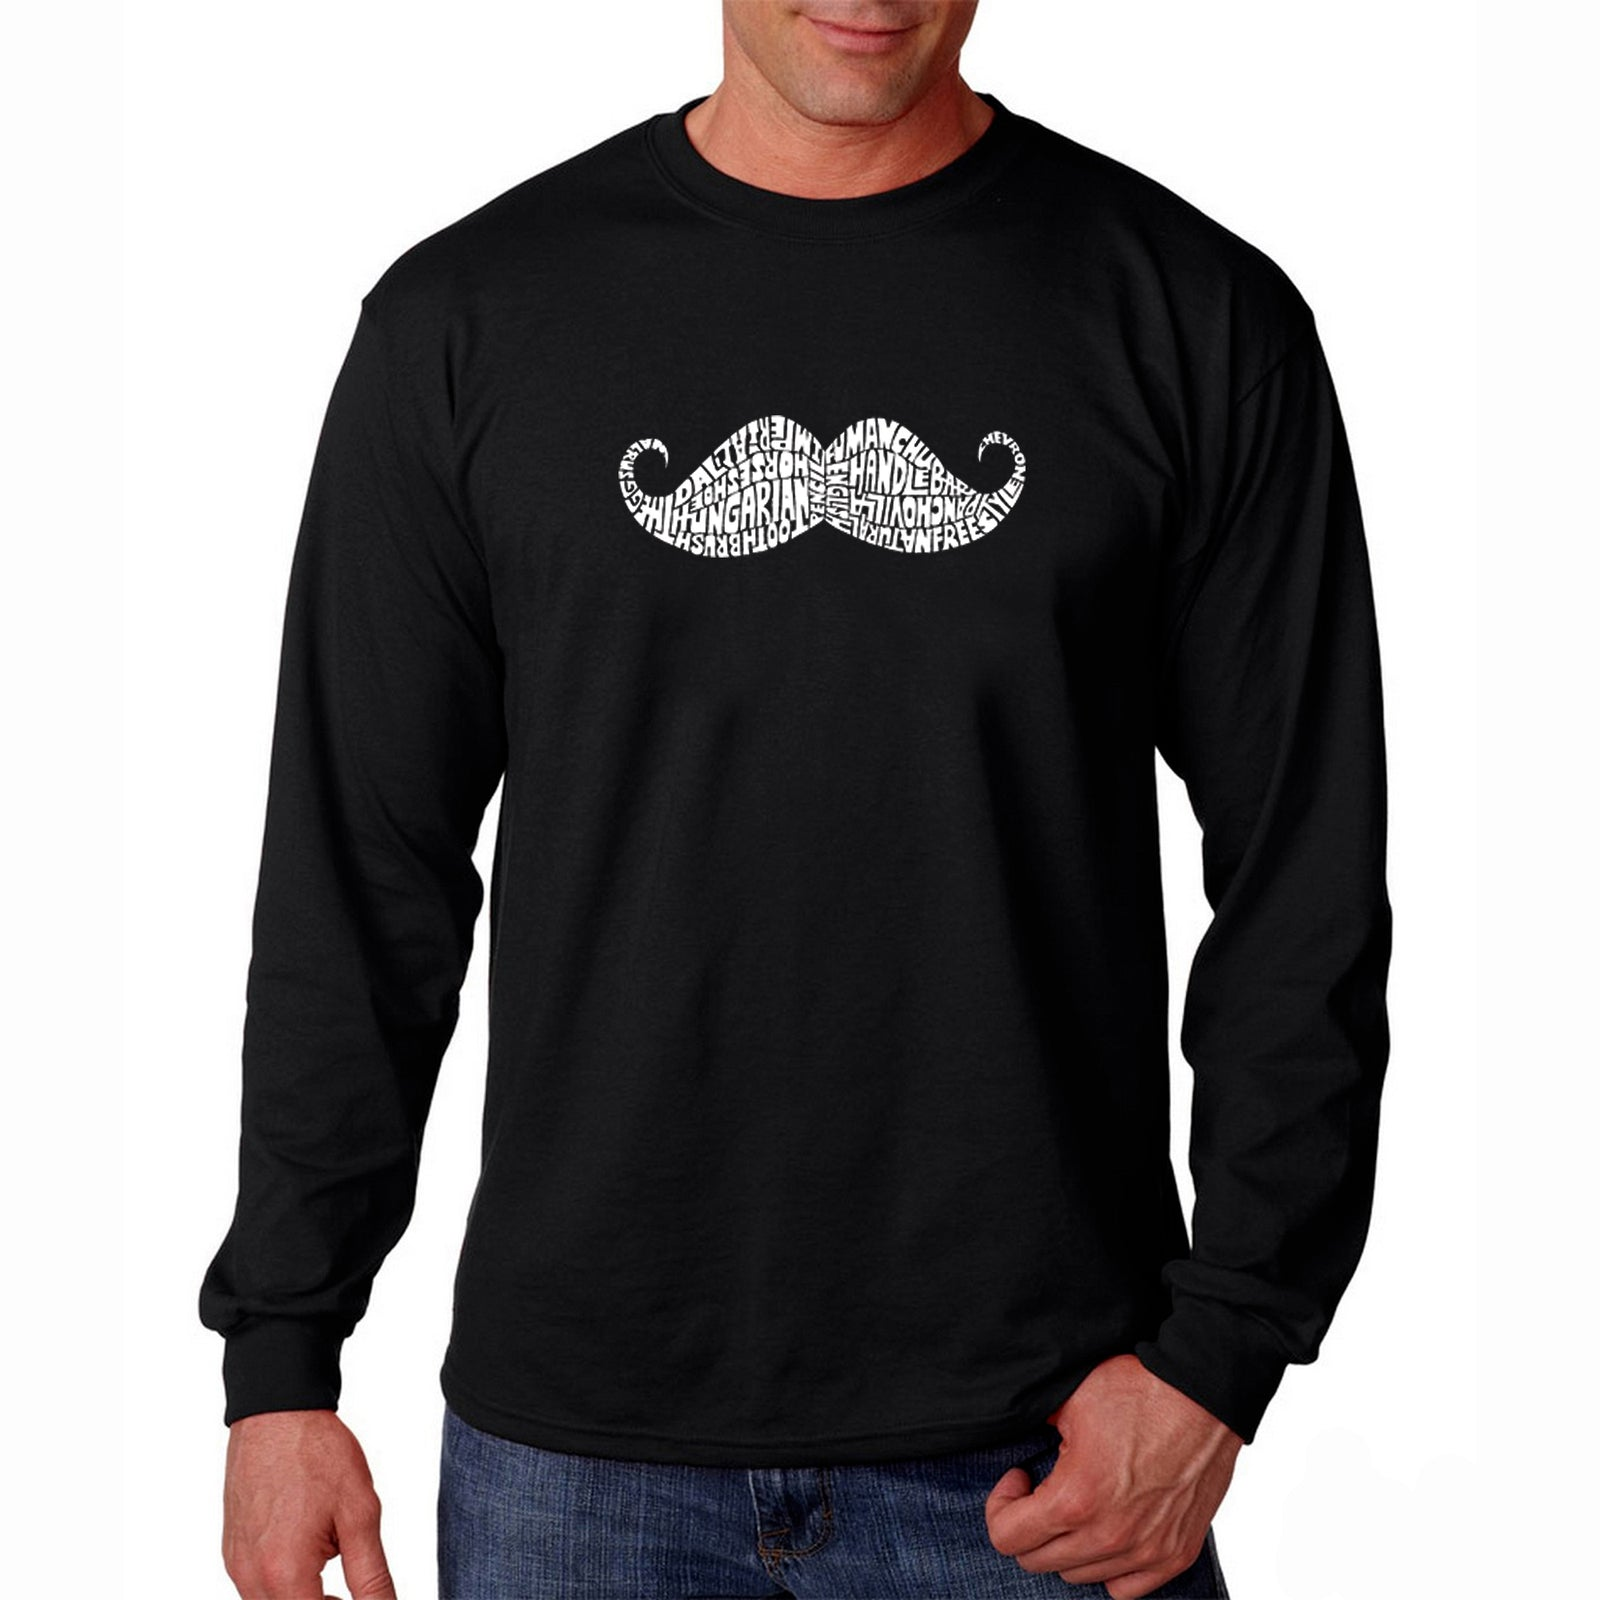 Men's Long Sleeve T-shirt - WAYS TO STYLE A MOUSTACHE